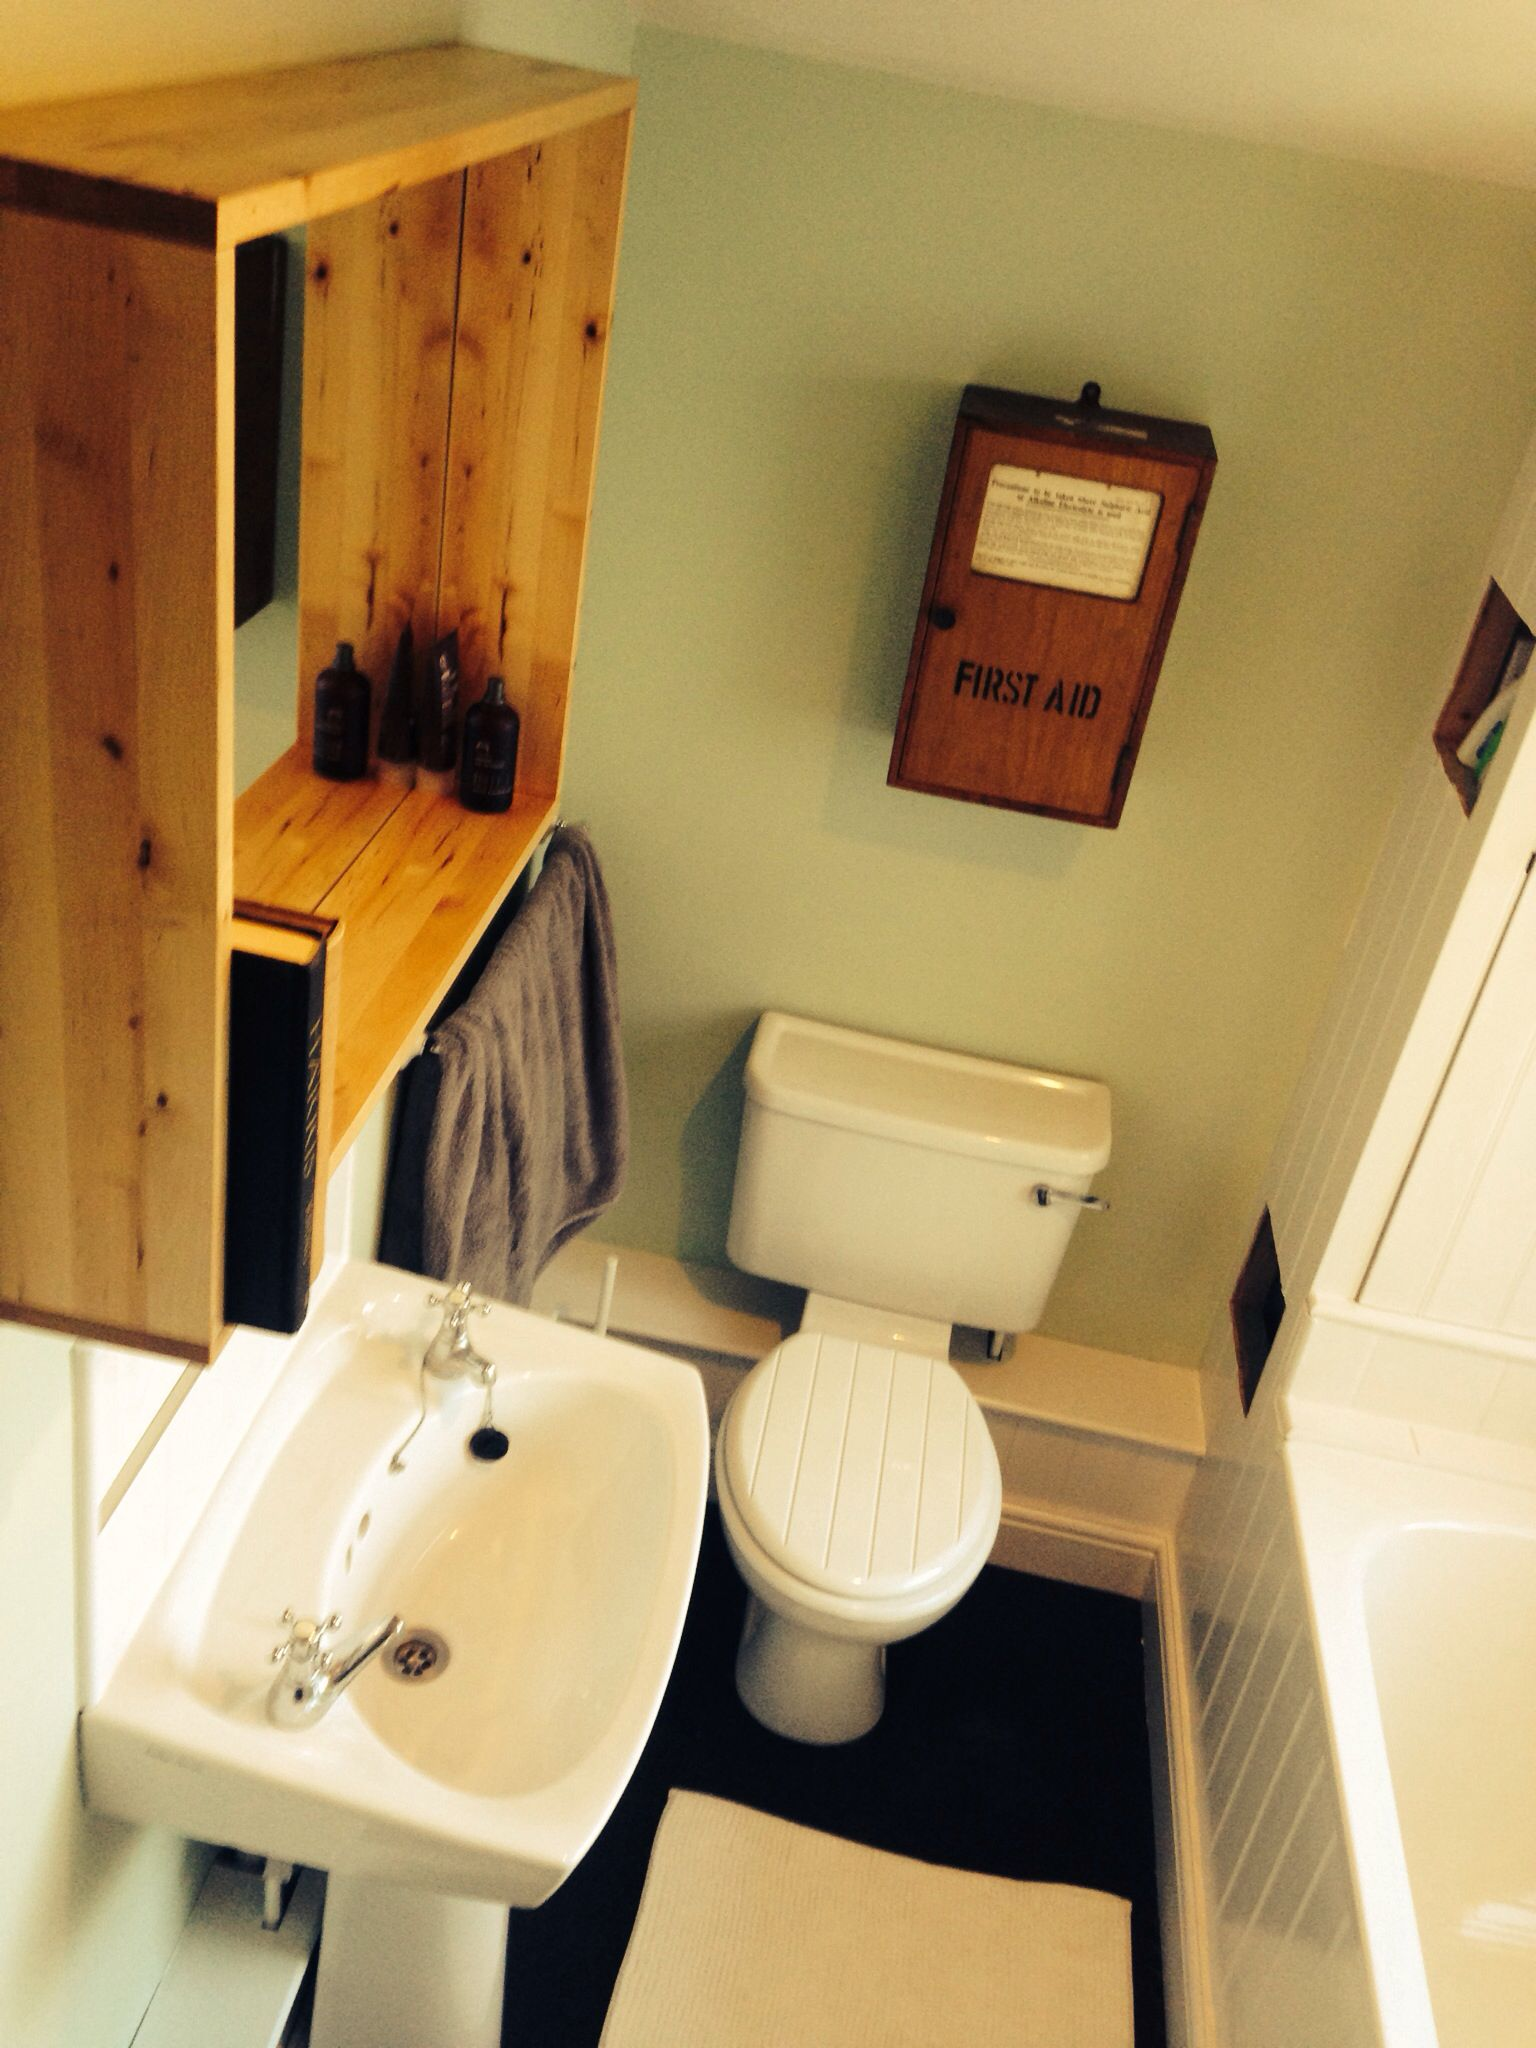 Dulux bathroom ideas - New Bathroom With Willow Tree By Dulux And An Old First Aid Box